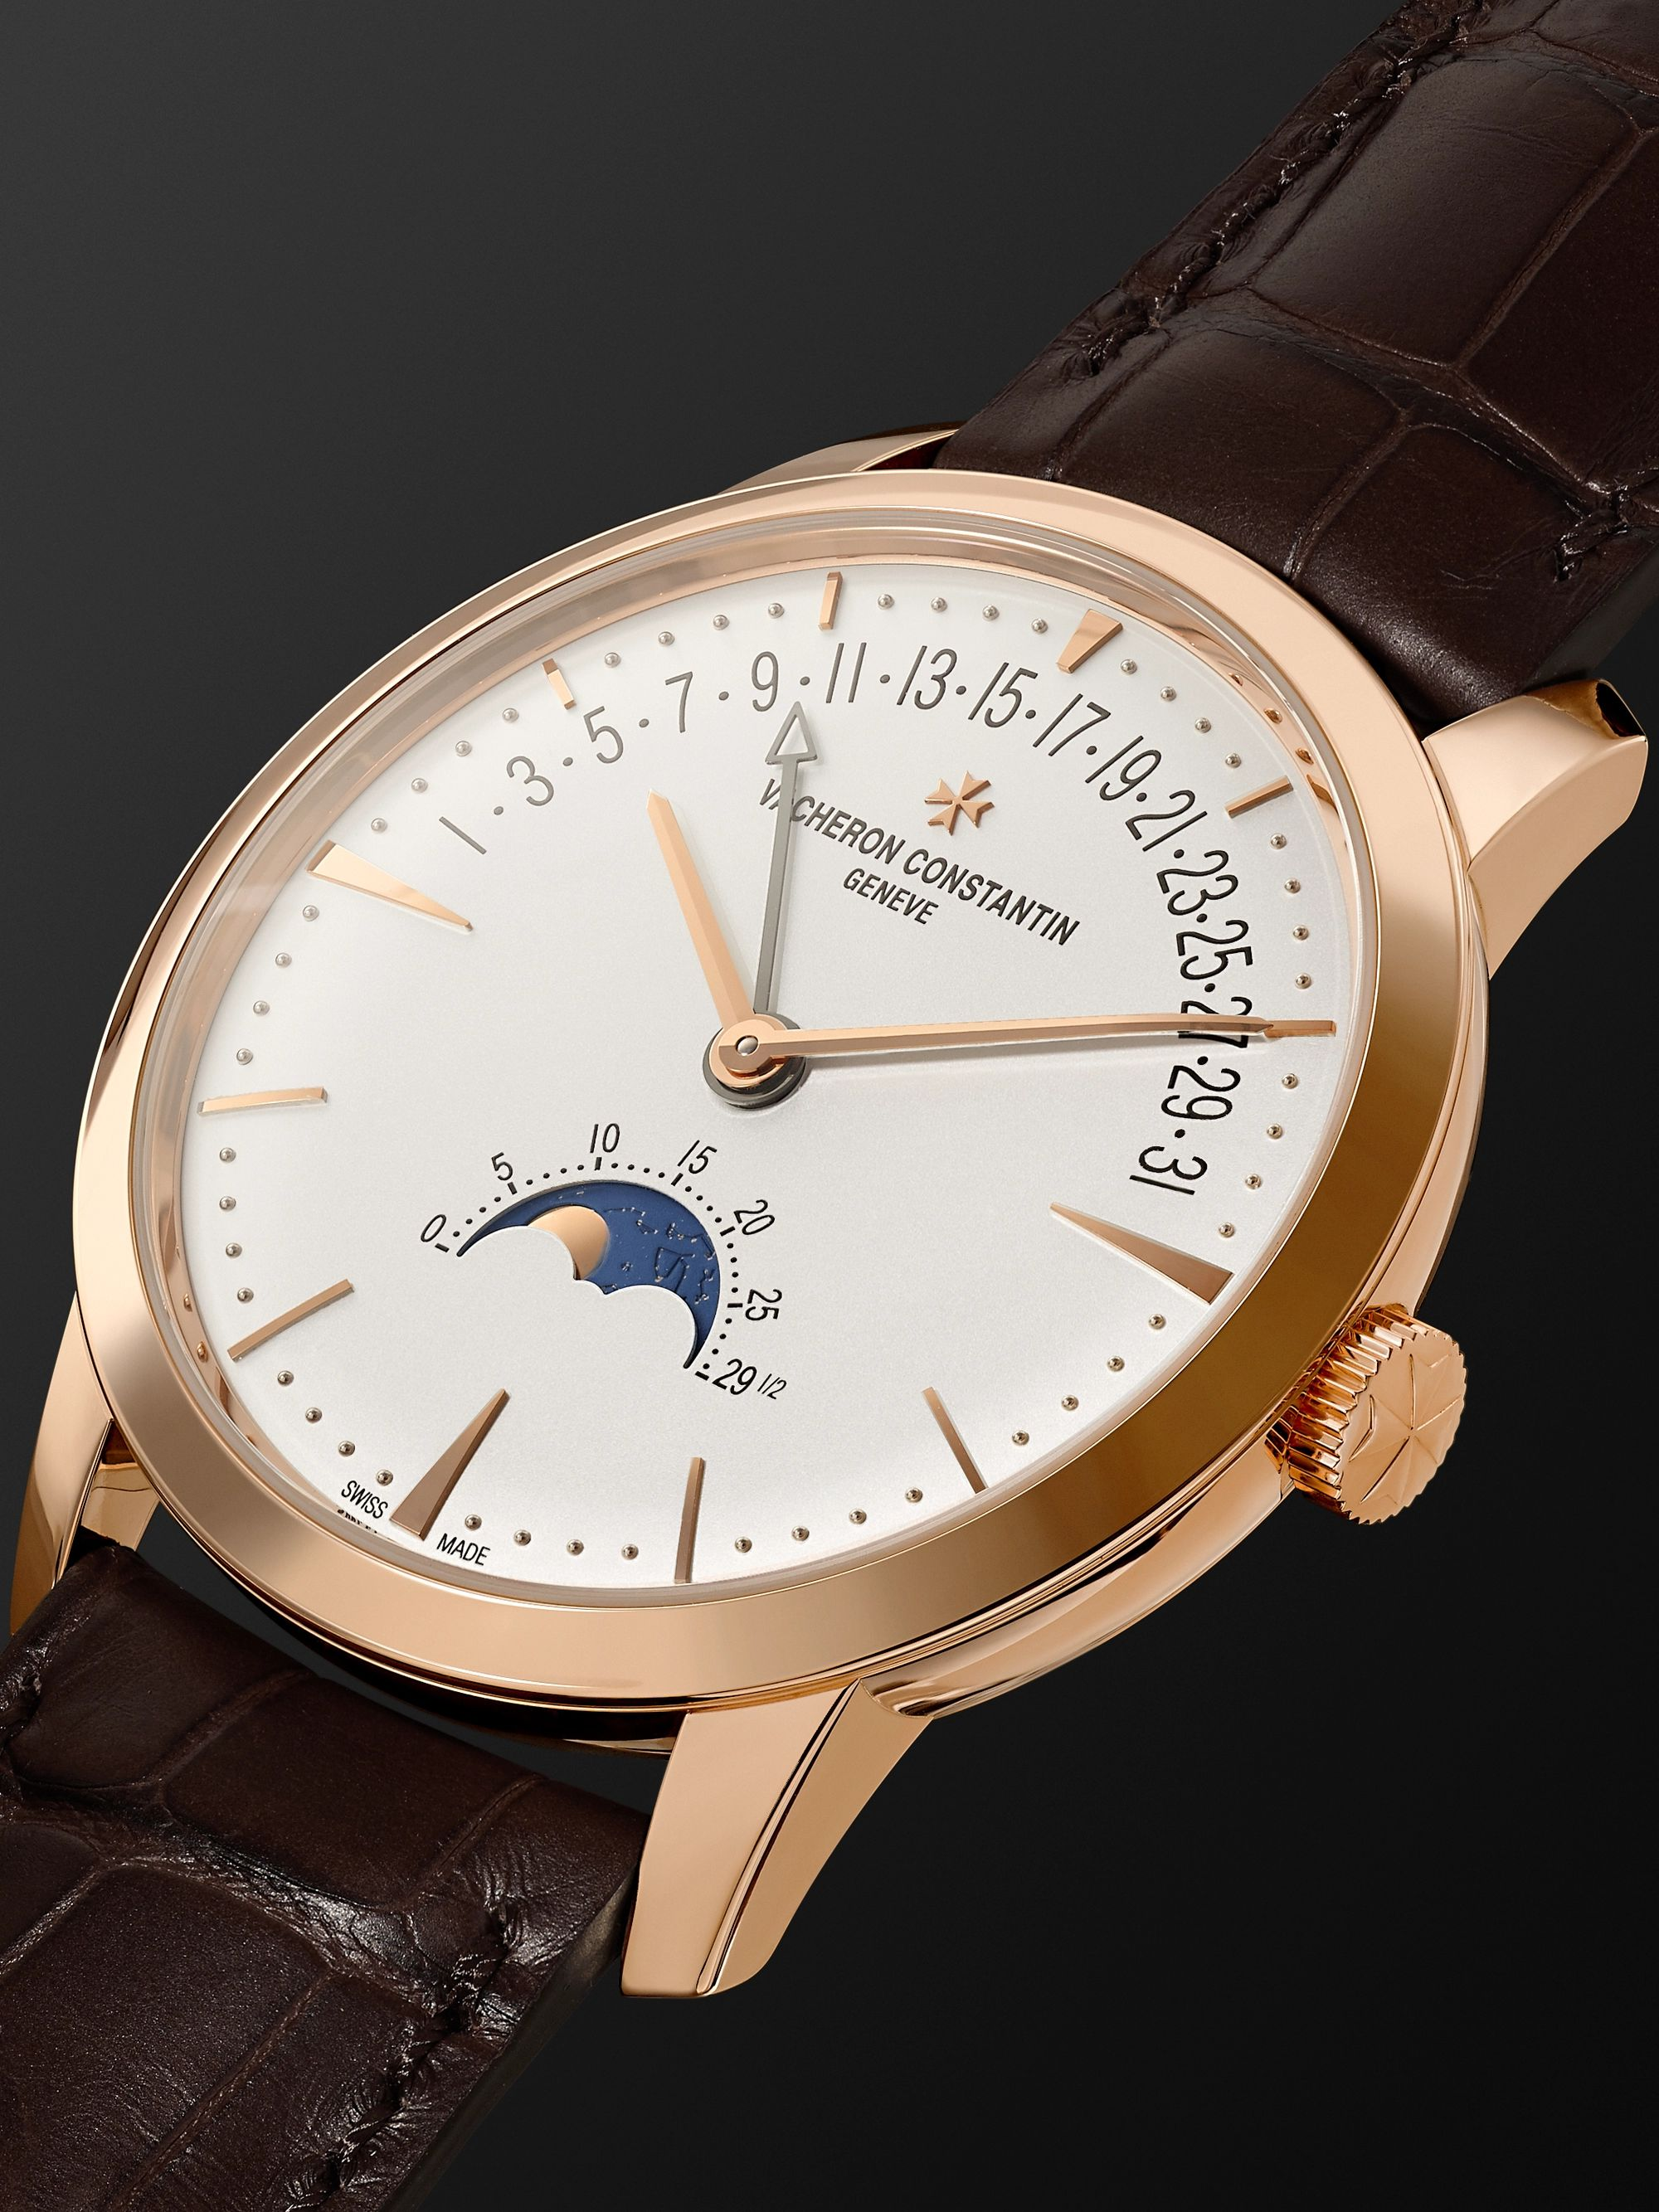 Vacheron Constantin Patrimony Moon Phase and Retrograde Date Automatic 42.5mm 18 Karat Pink Gold and Alligator Watch, Ref. No. 4010U/000R-B329